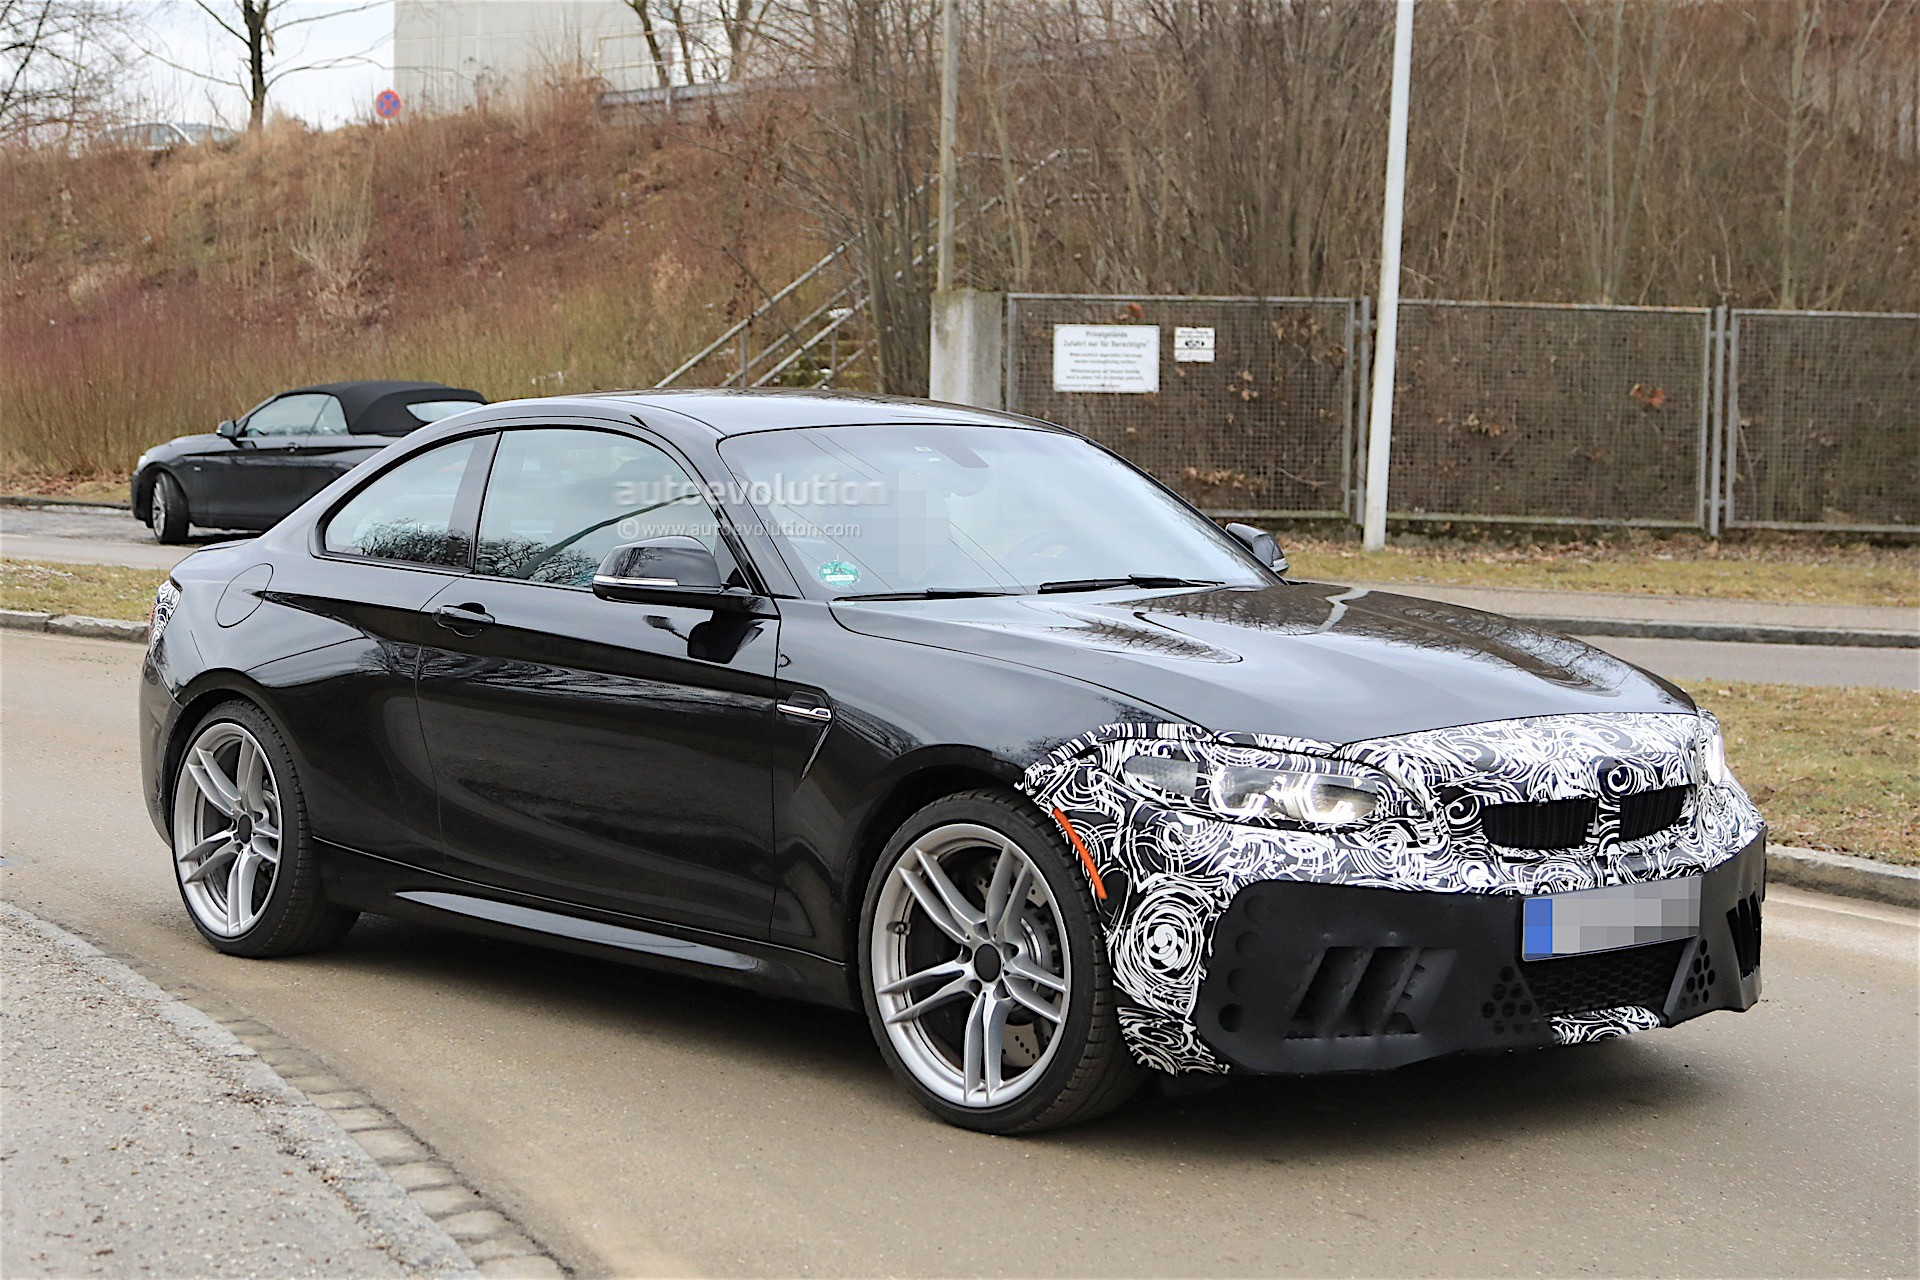 2018 bmw m2 facelift spotted almost uncovered looks as good as ever autoevolution. Black Bedroom Furniture Sets. Home Design Ideas